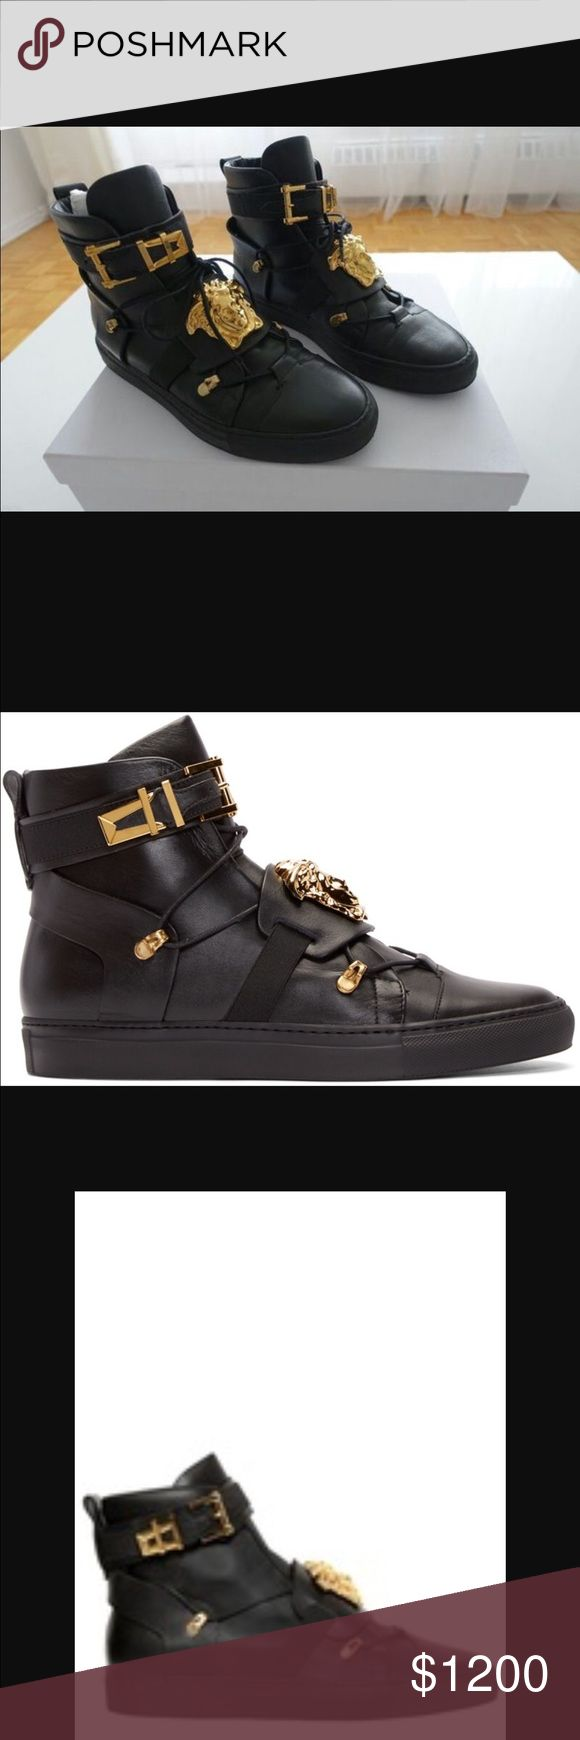 Versace sneakers Black leather sneakers with Gold accents Versace Shoes Sneakers